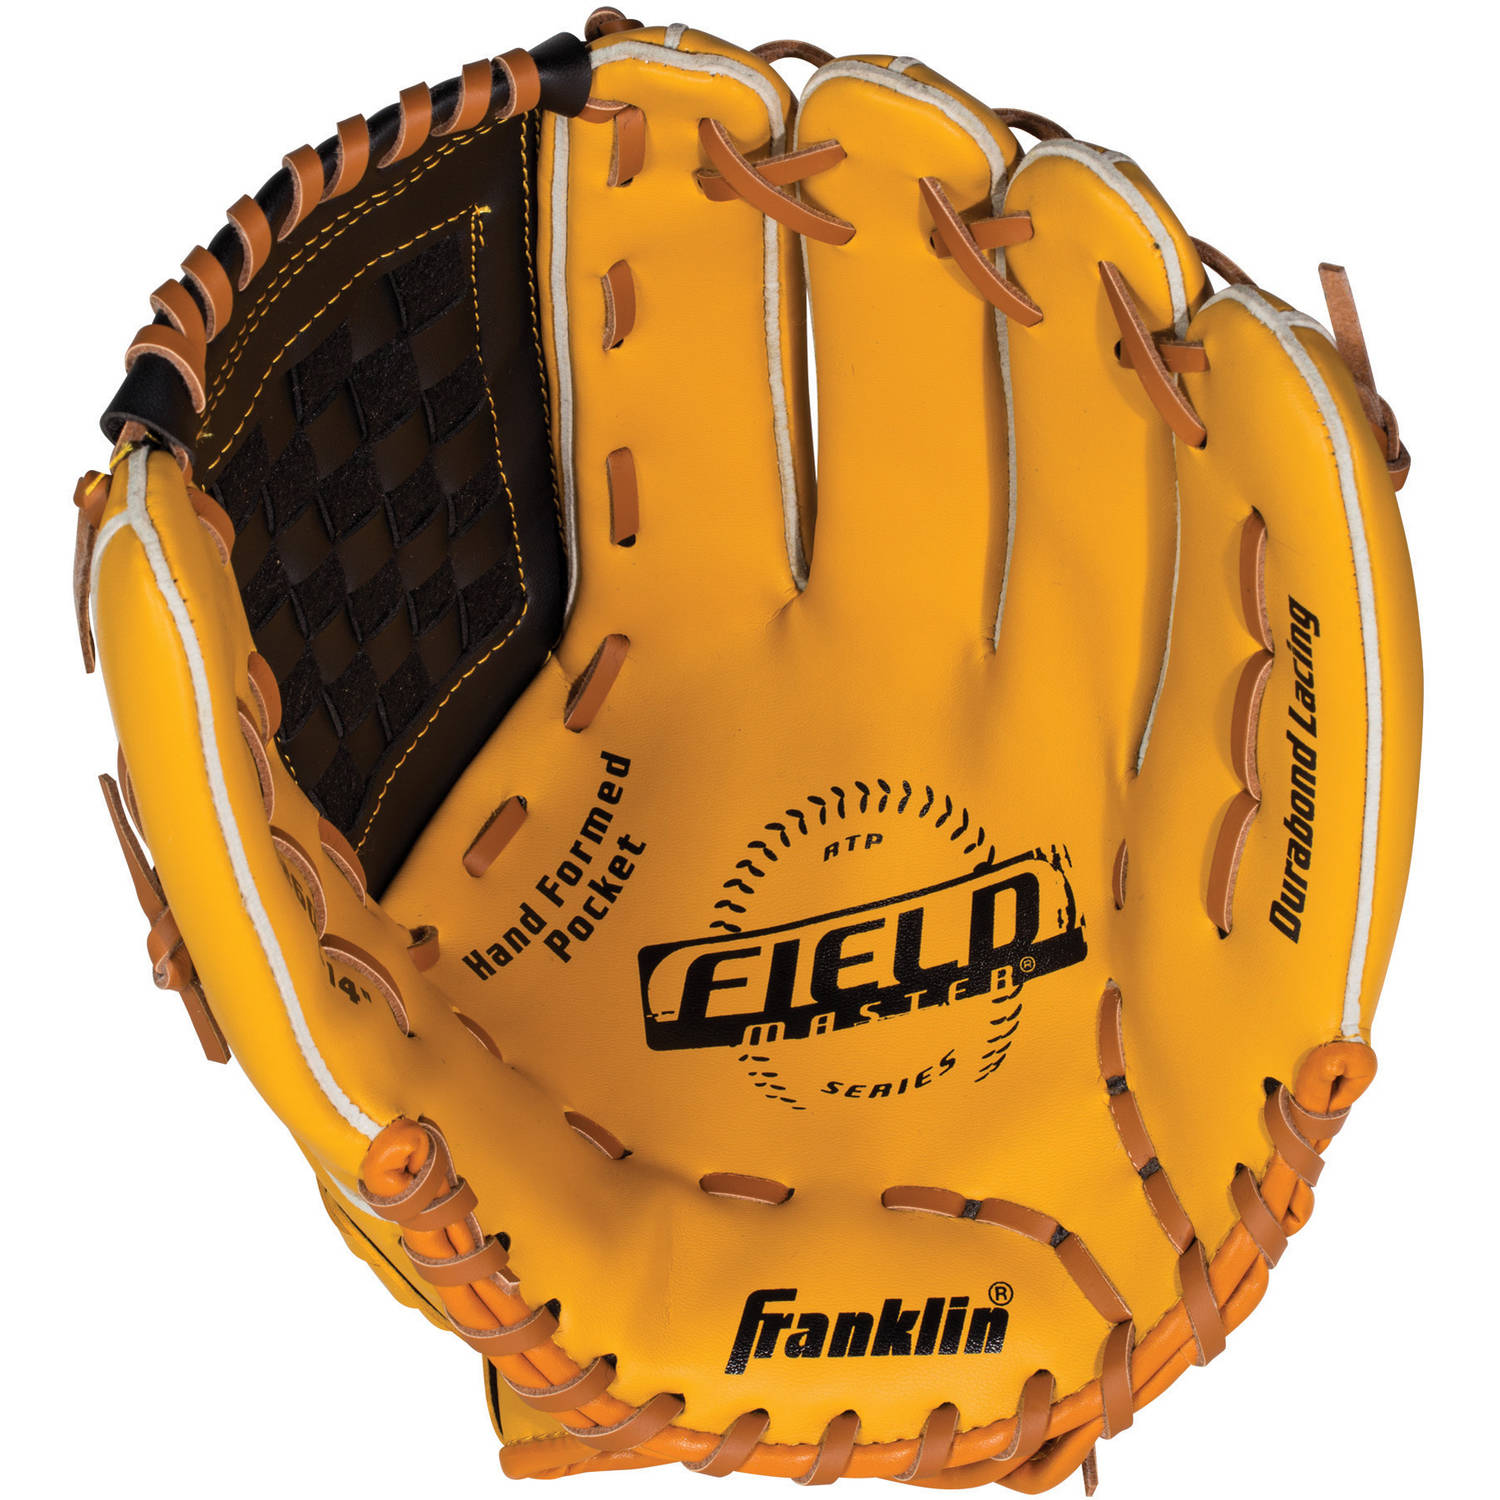 Franklin Unisex Field Master Baseball Glove, Blonde Black by Franklin Sports